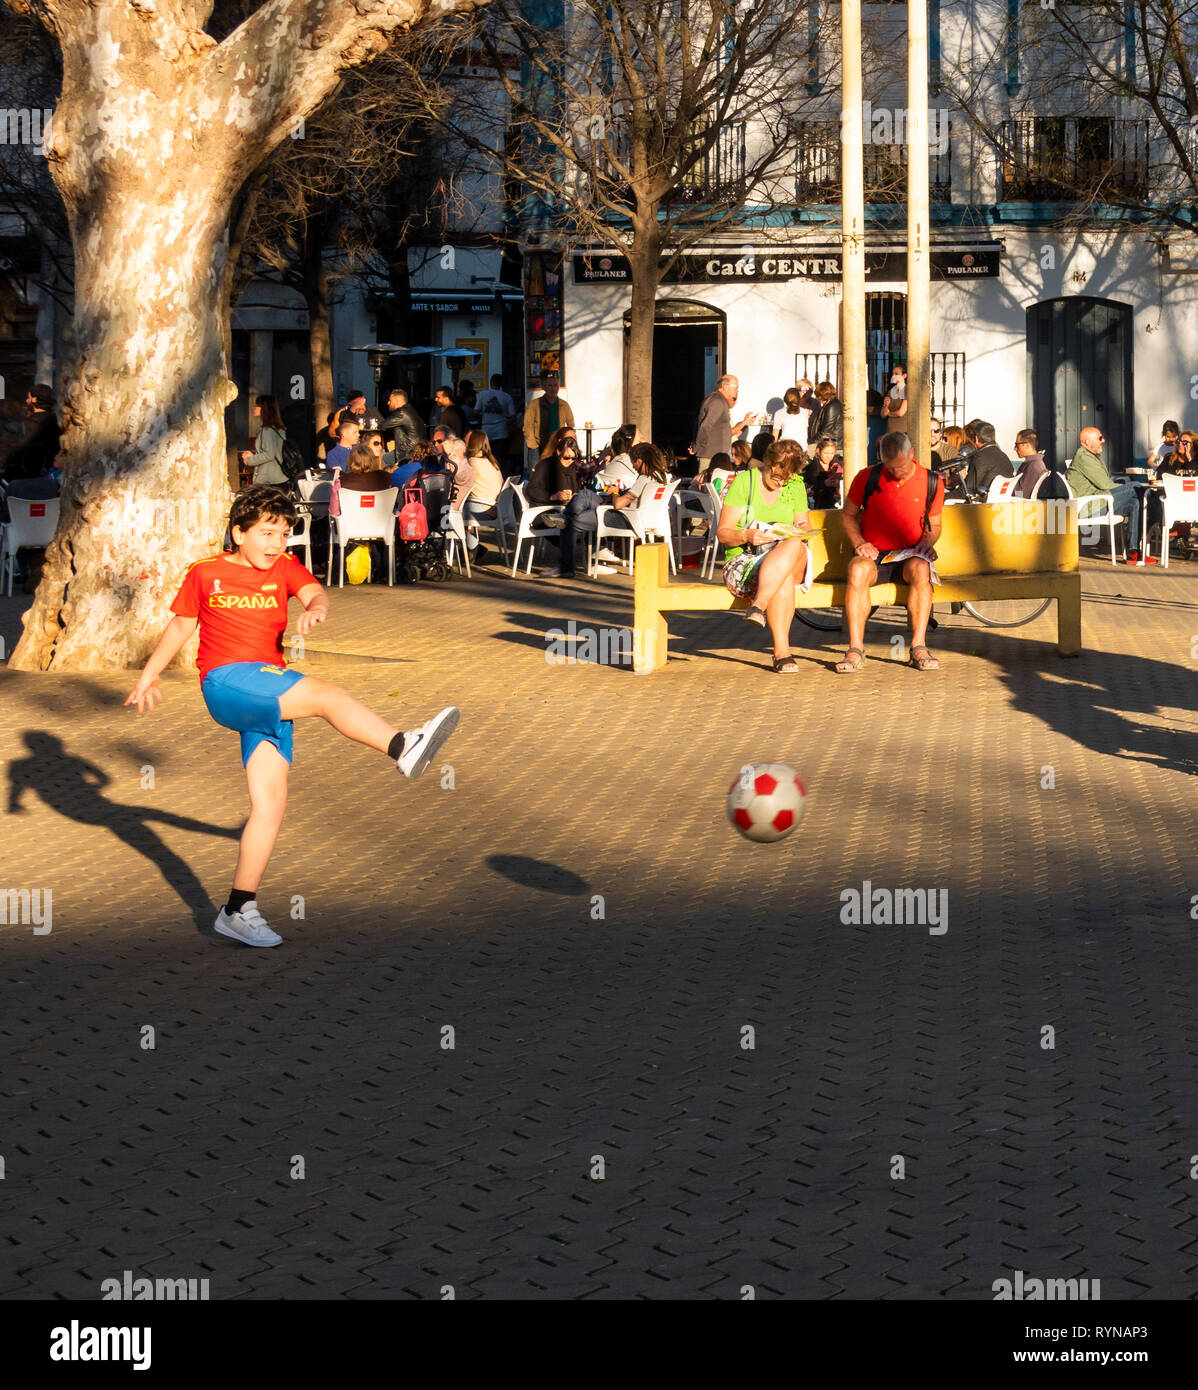 A young boy kicking a soccer ball in the Alameda de Hercules in Seville - Stock Image